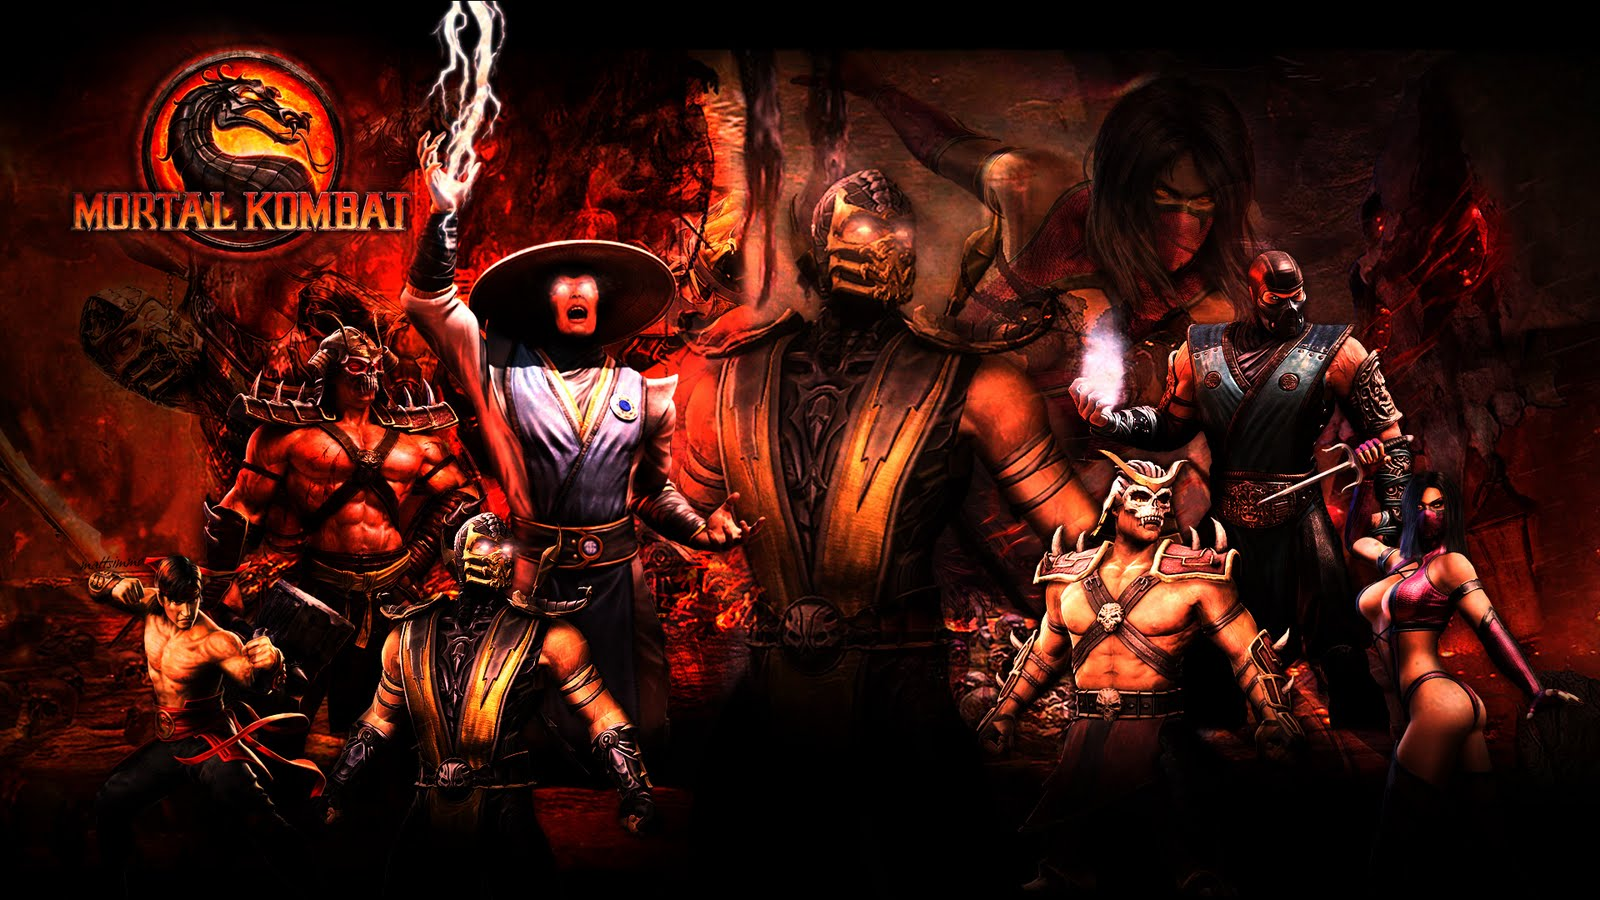 MK9 Wallpaper HD http://ecro.dyndns.org/mk9-wallpaper-hd/